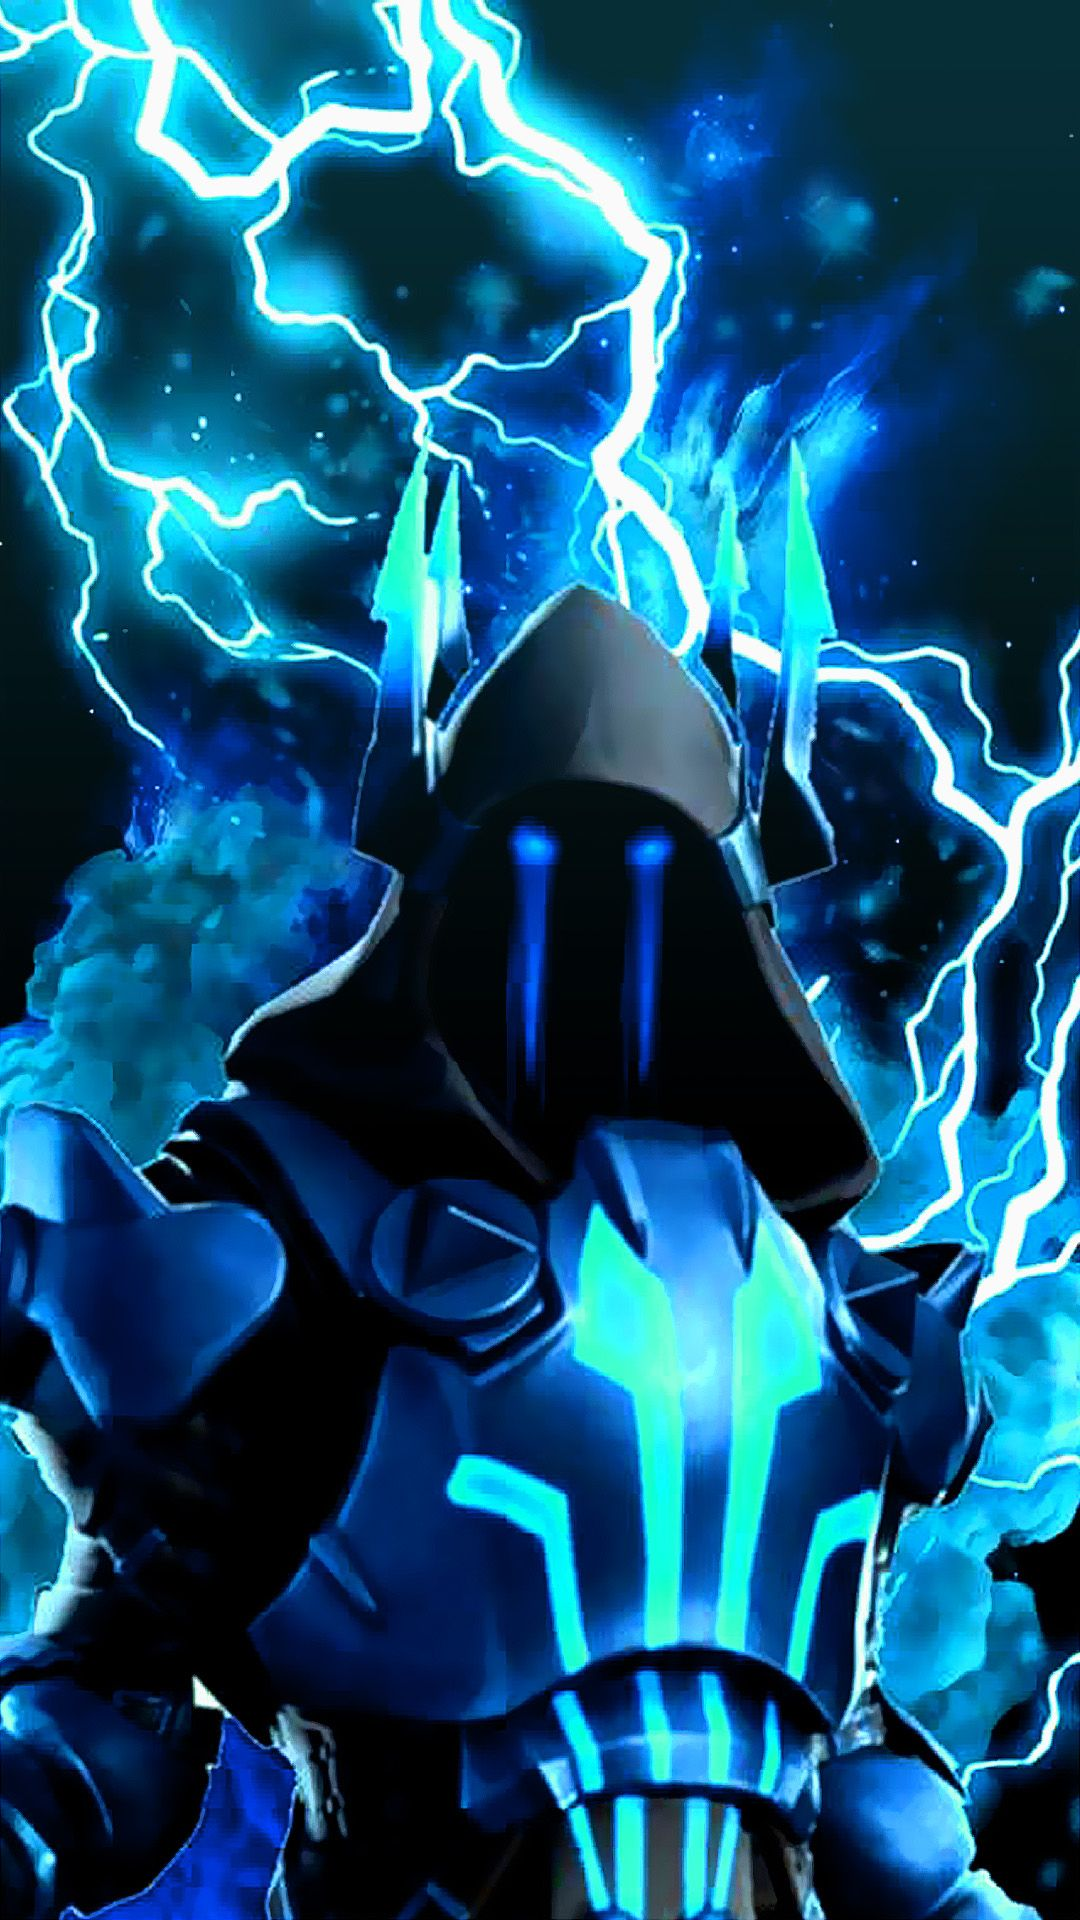 Fortnite Full Hd Phone Vertical Wallpaper Ninja Wallpaper Gaming Wallpapers Action Wallpaper